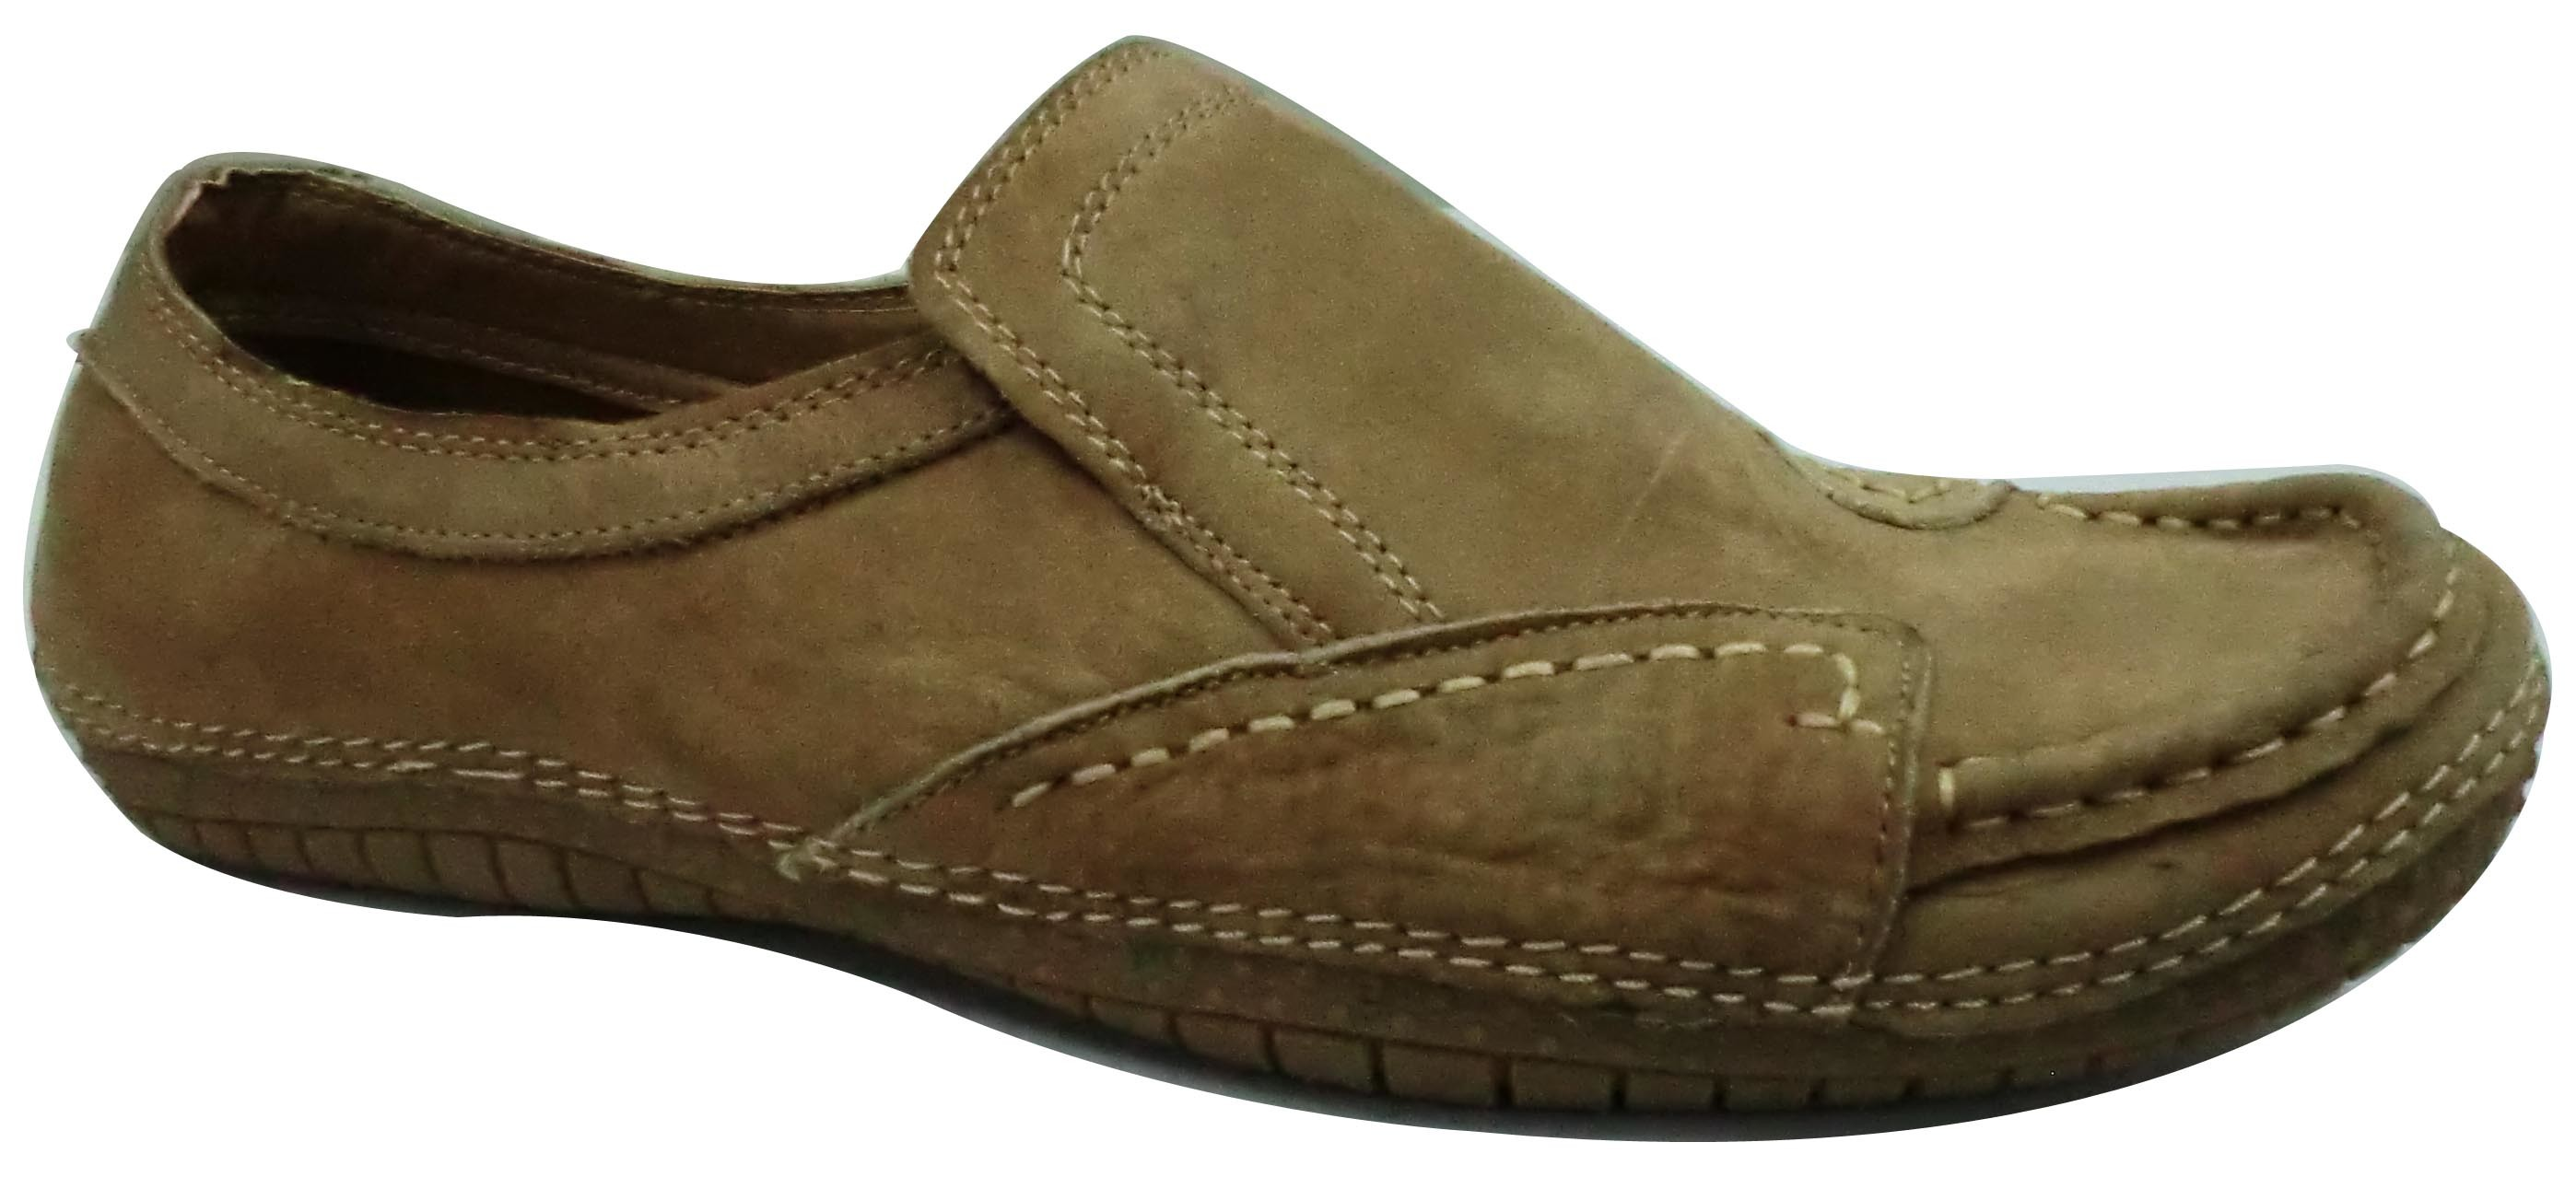 China Loafers Kp930 China Men Loafers